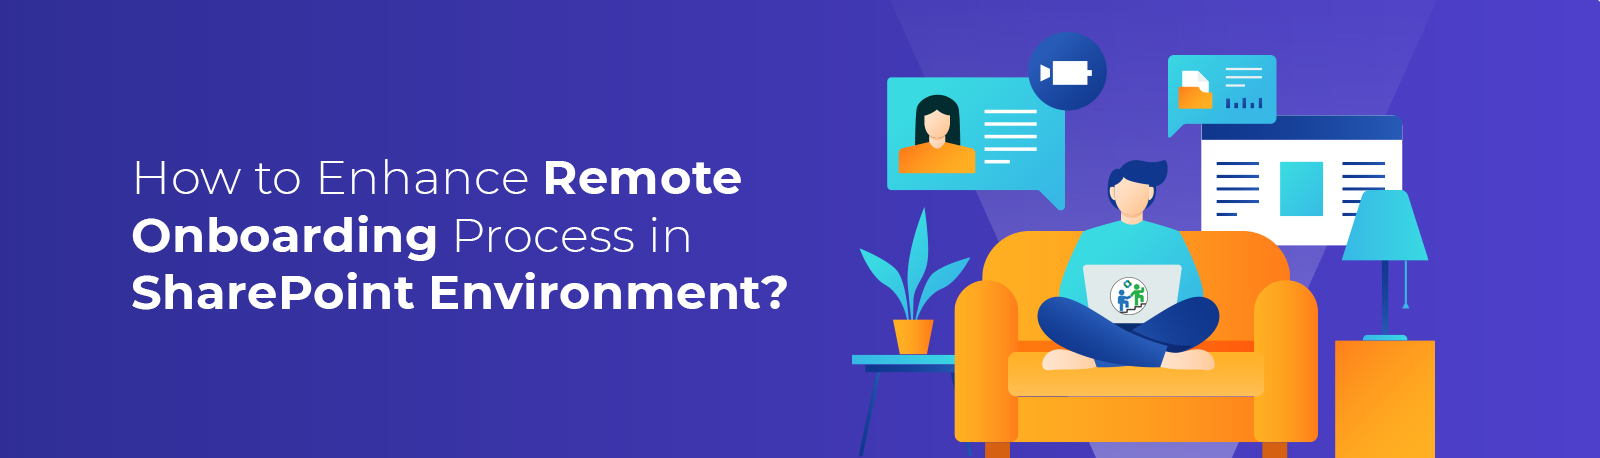 Remote Onboarding Process